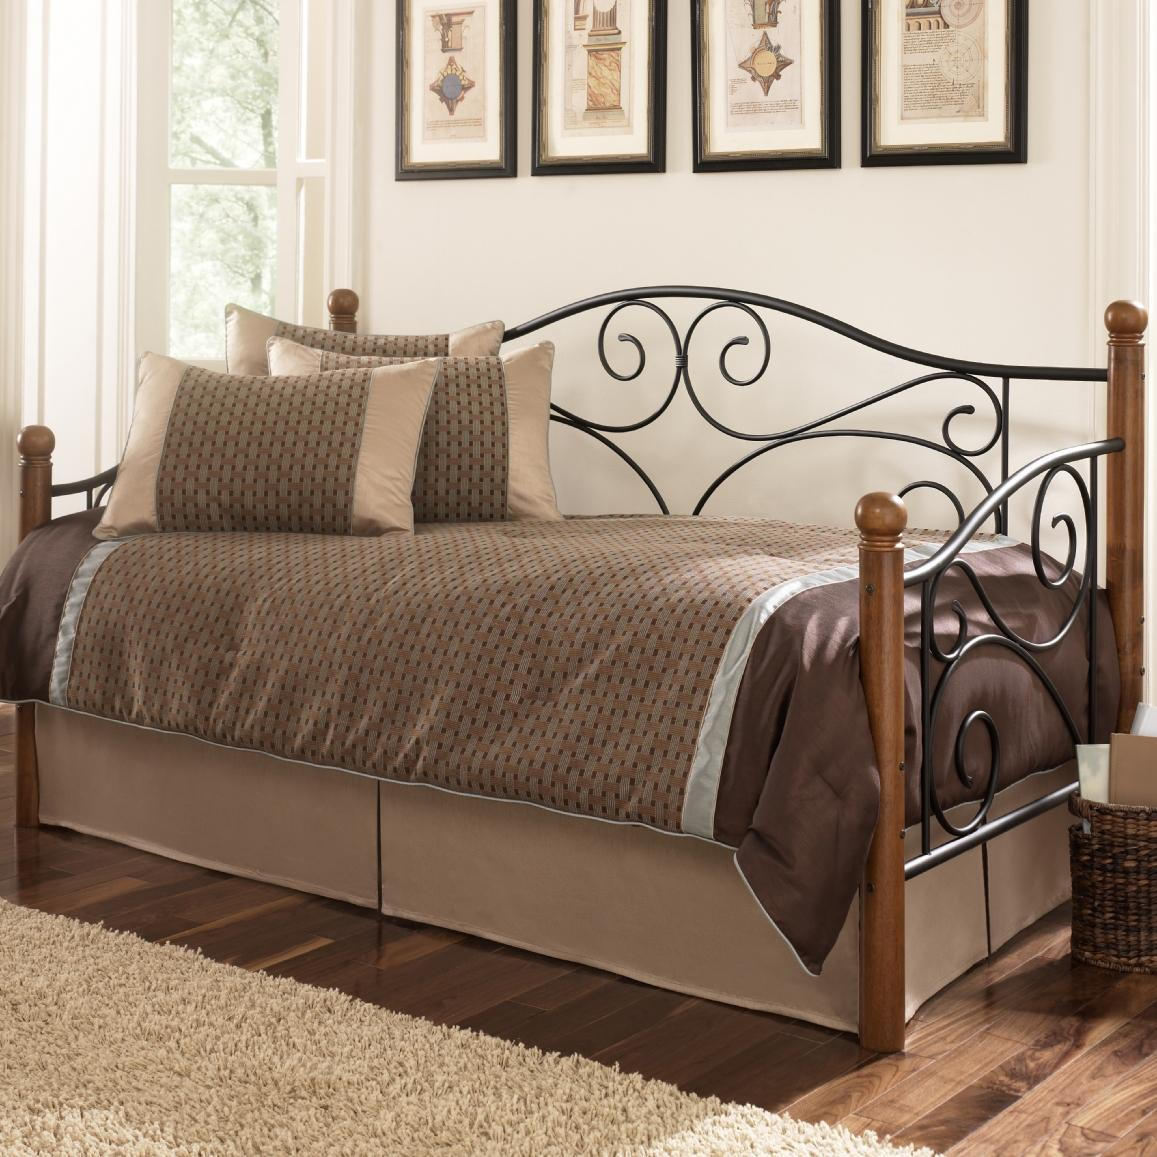 Fashion Bed Group Daybeds Doral Daybed W Link Spring